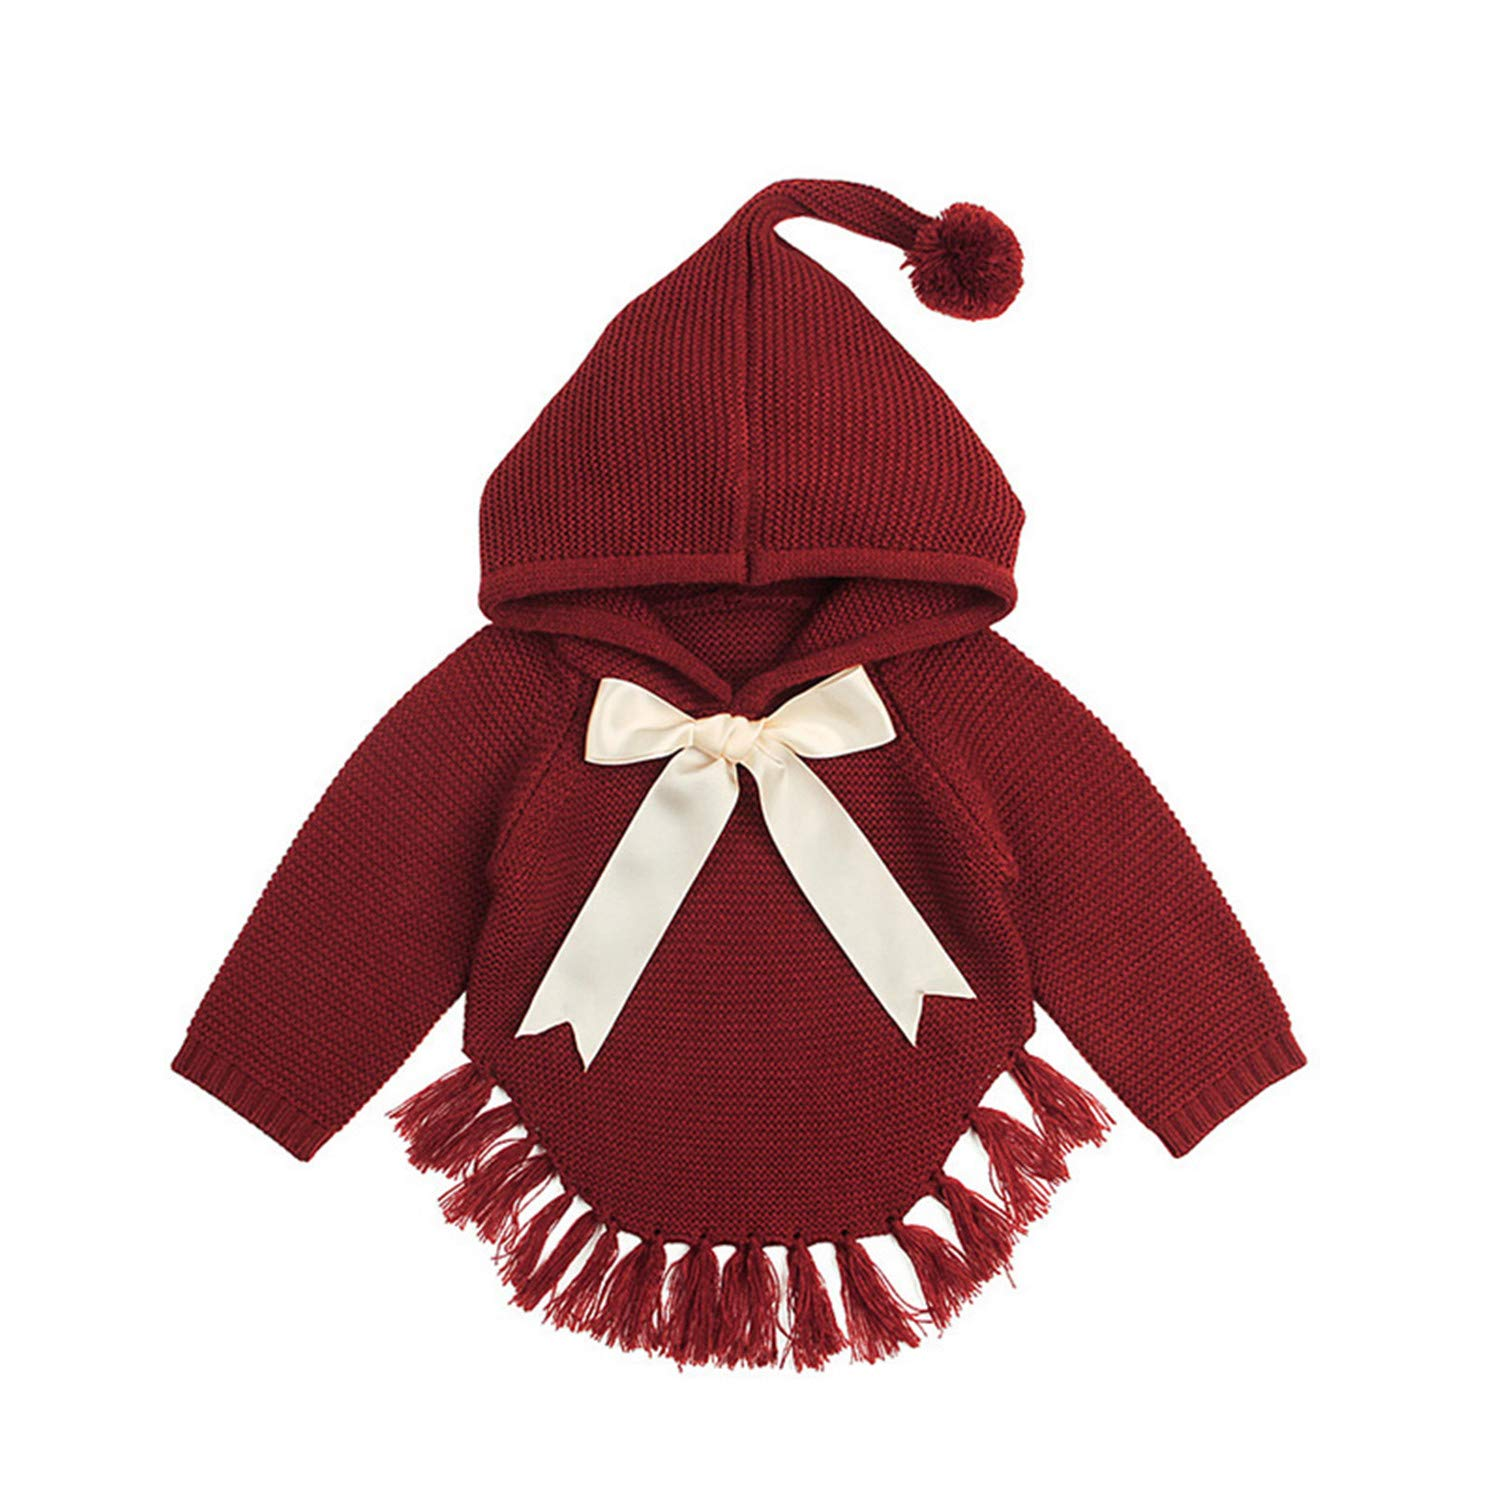 Spring/&Autumn Baby Girl Solid Bow Decoration Sweater Kids Princess Style Hooded Cape Coat 6M-24M,JC160